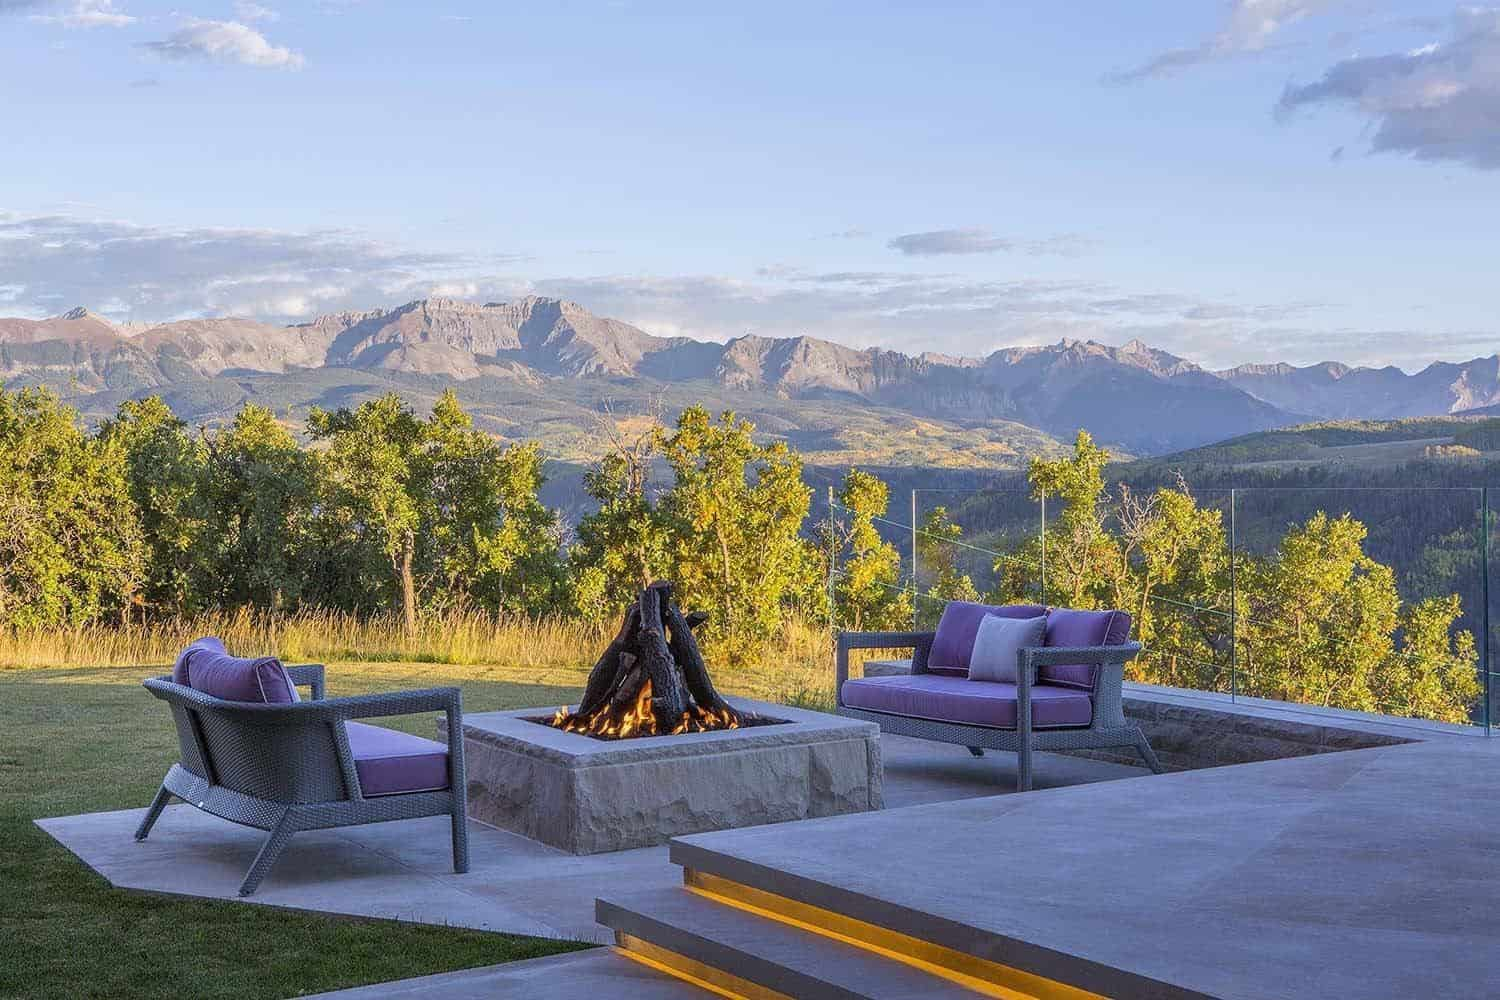 Modern-Residence-Colorado-Poss Architecture-60-1 Kindesign